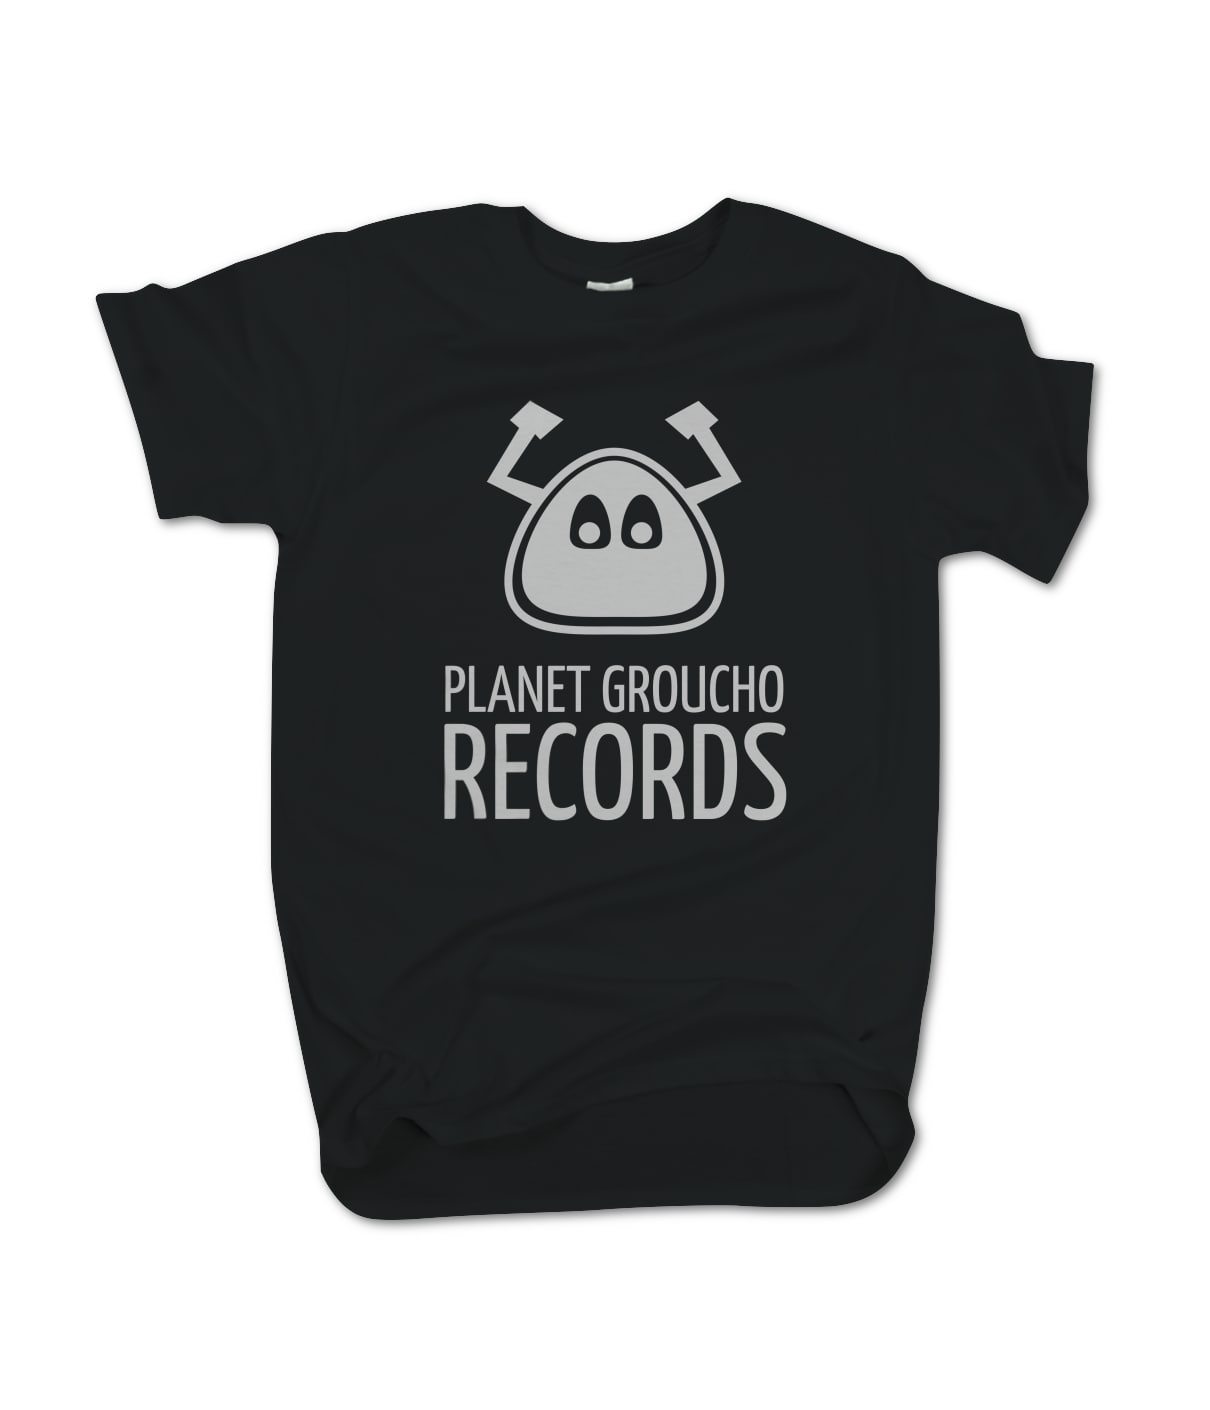 Planet Groucho Records T-Shirt